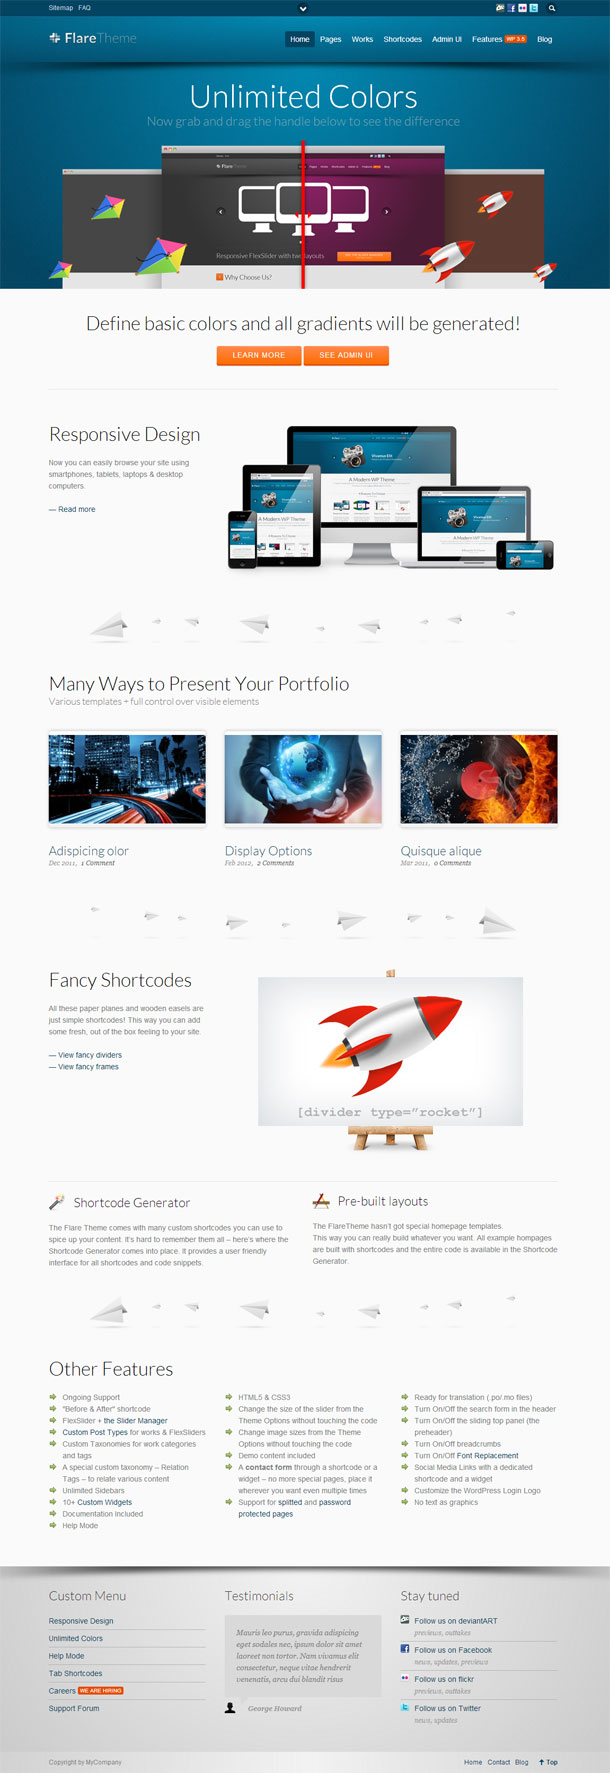 Flare Best Responsive Theme Image